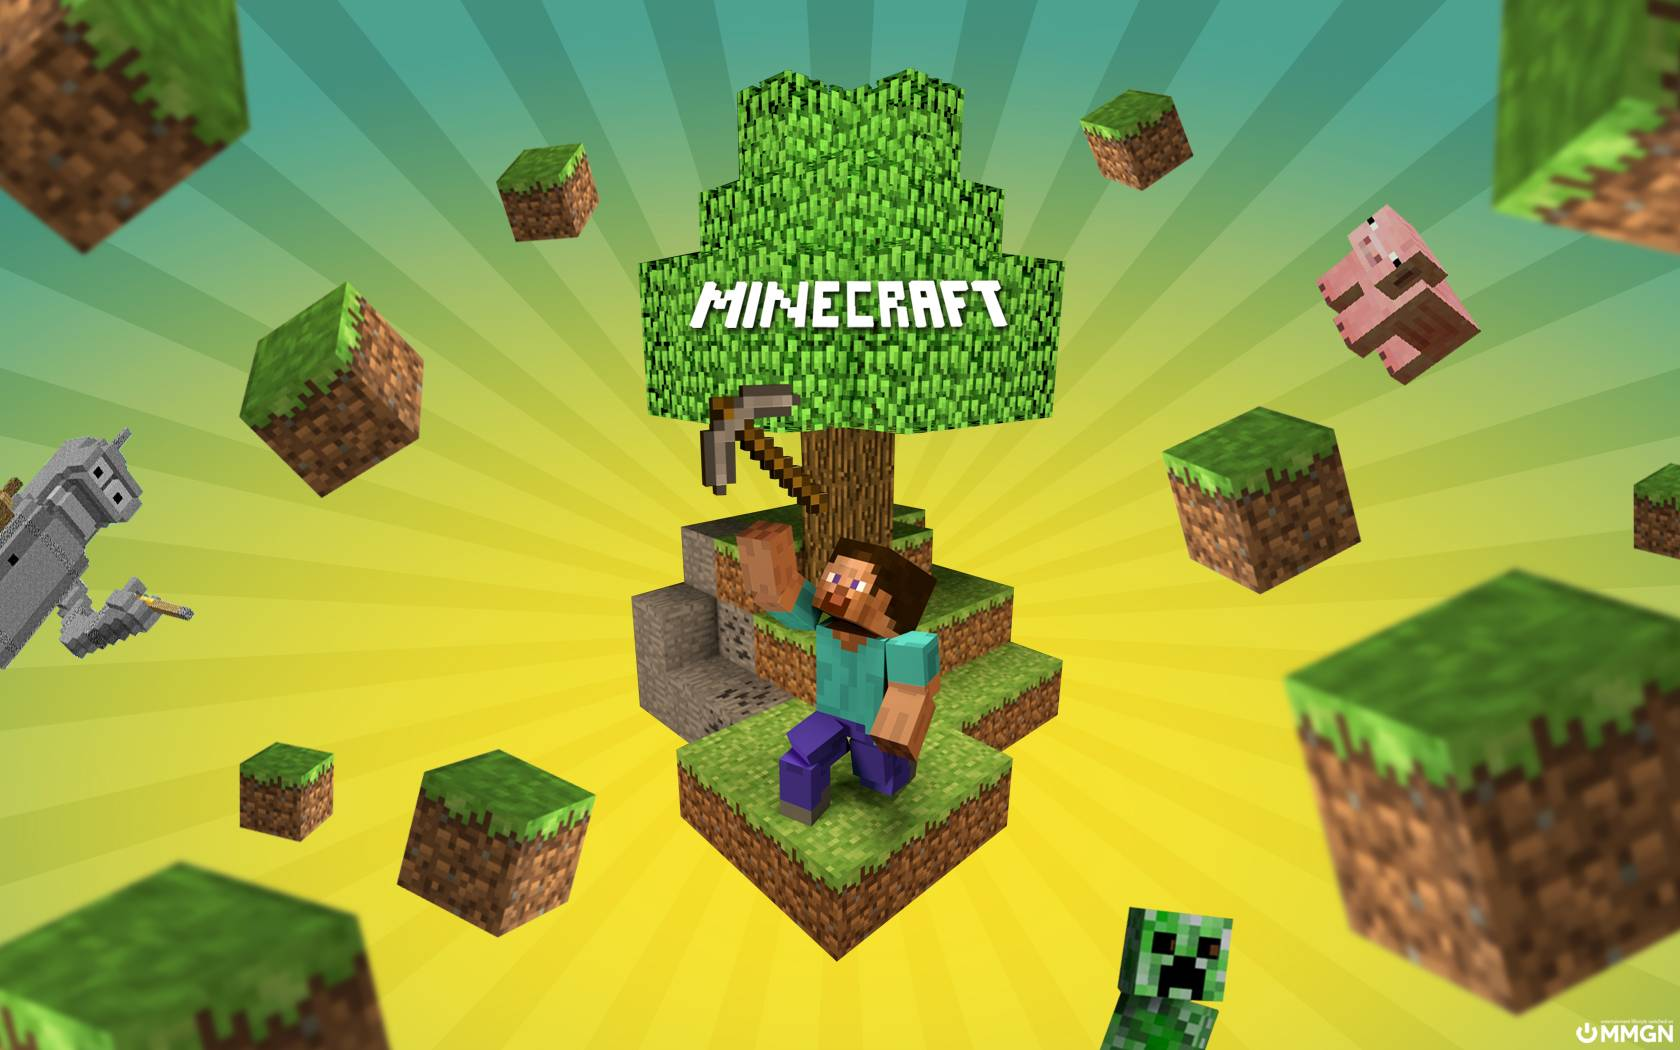 Minecraft Wallpaper Awesome Good For Desktop 225 Backgrounds